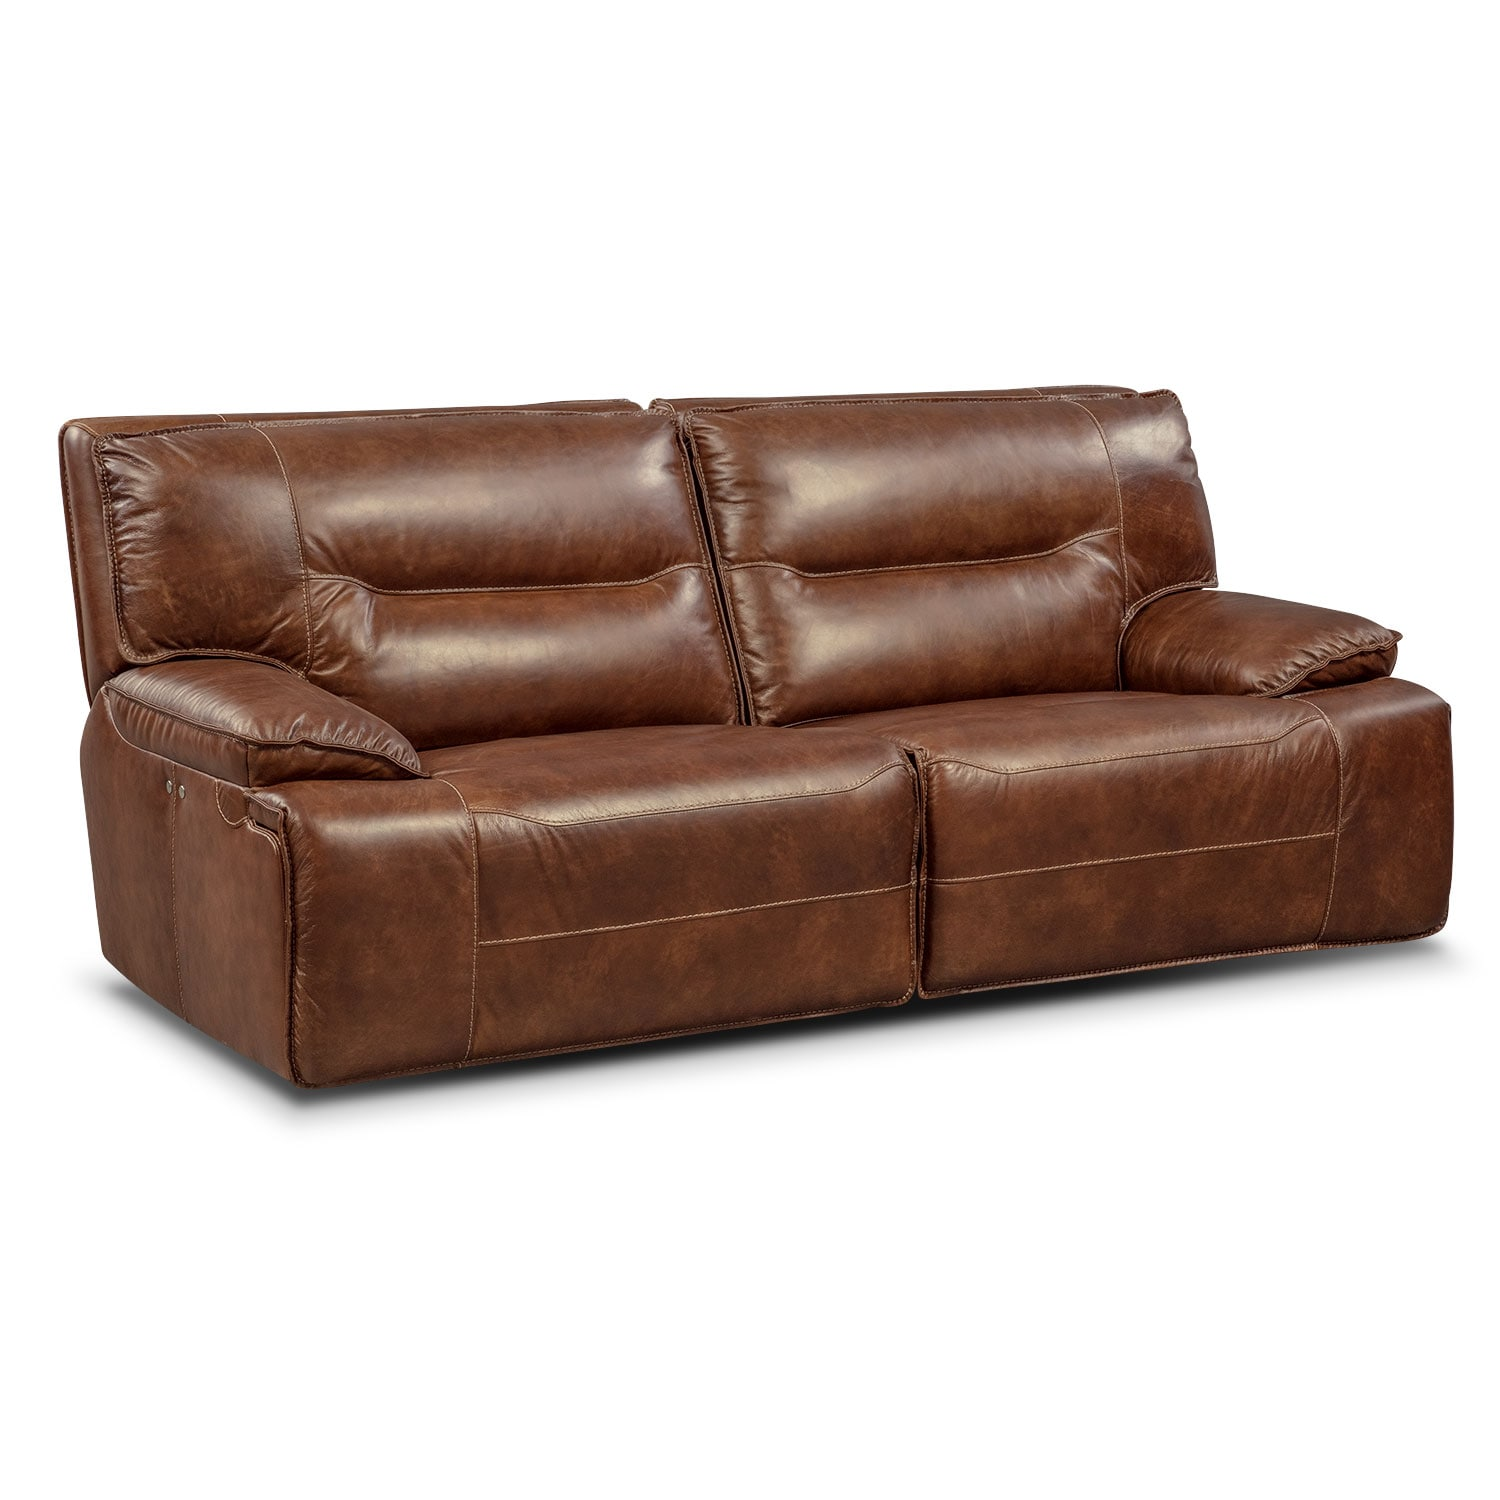 Living Room Furniture - Glenmont Brown 2 Pc. Power Reclining Sofa